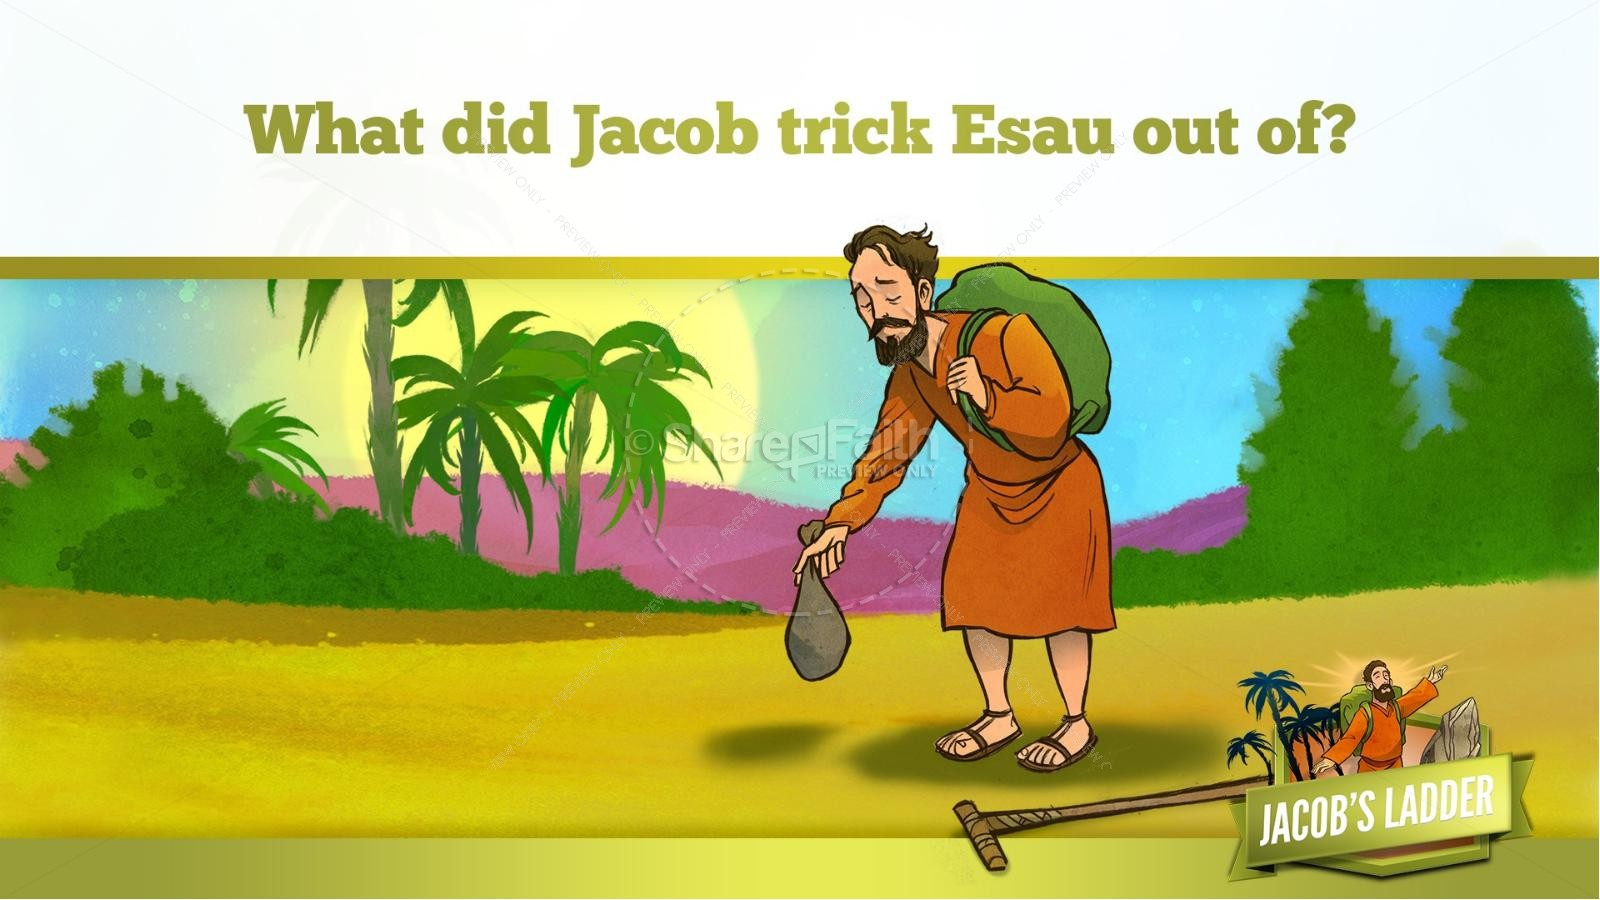 Genesis 28 Jacobs Ladder Kids Bible Story | Kids Bible Stories